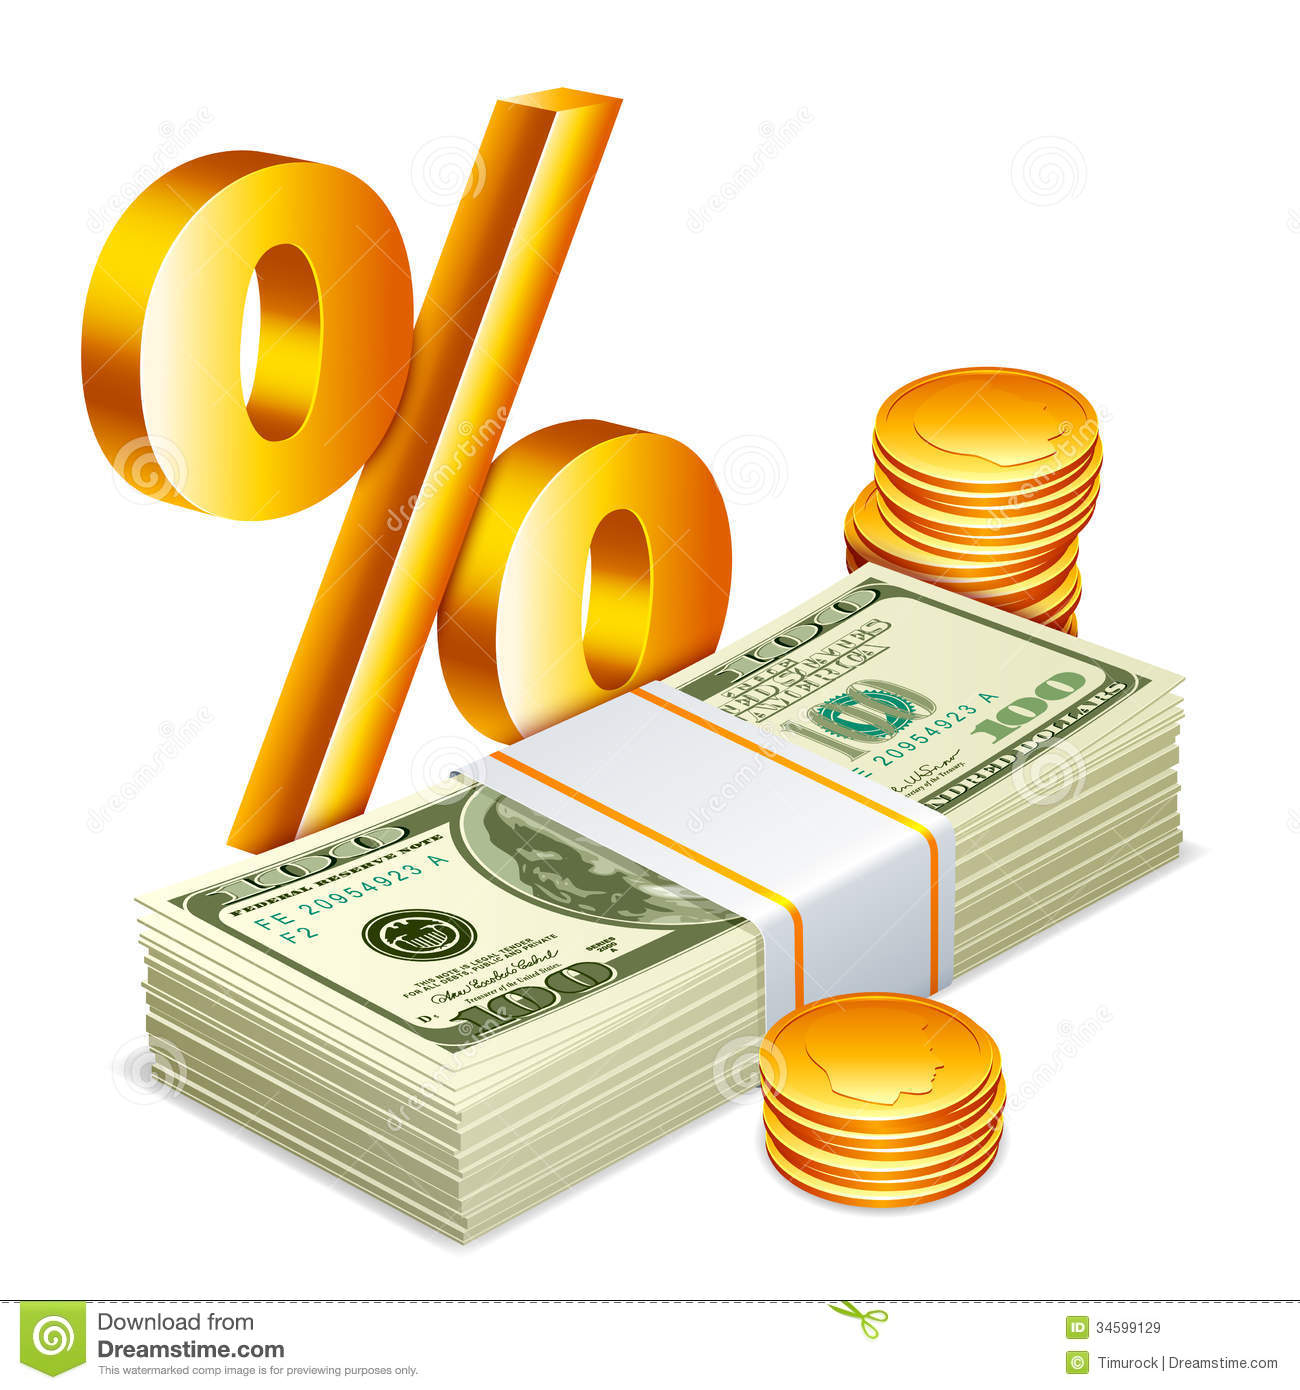 how to find percentage of money